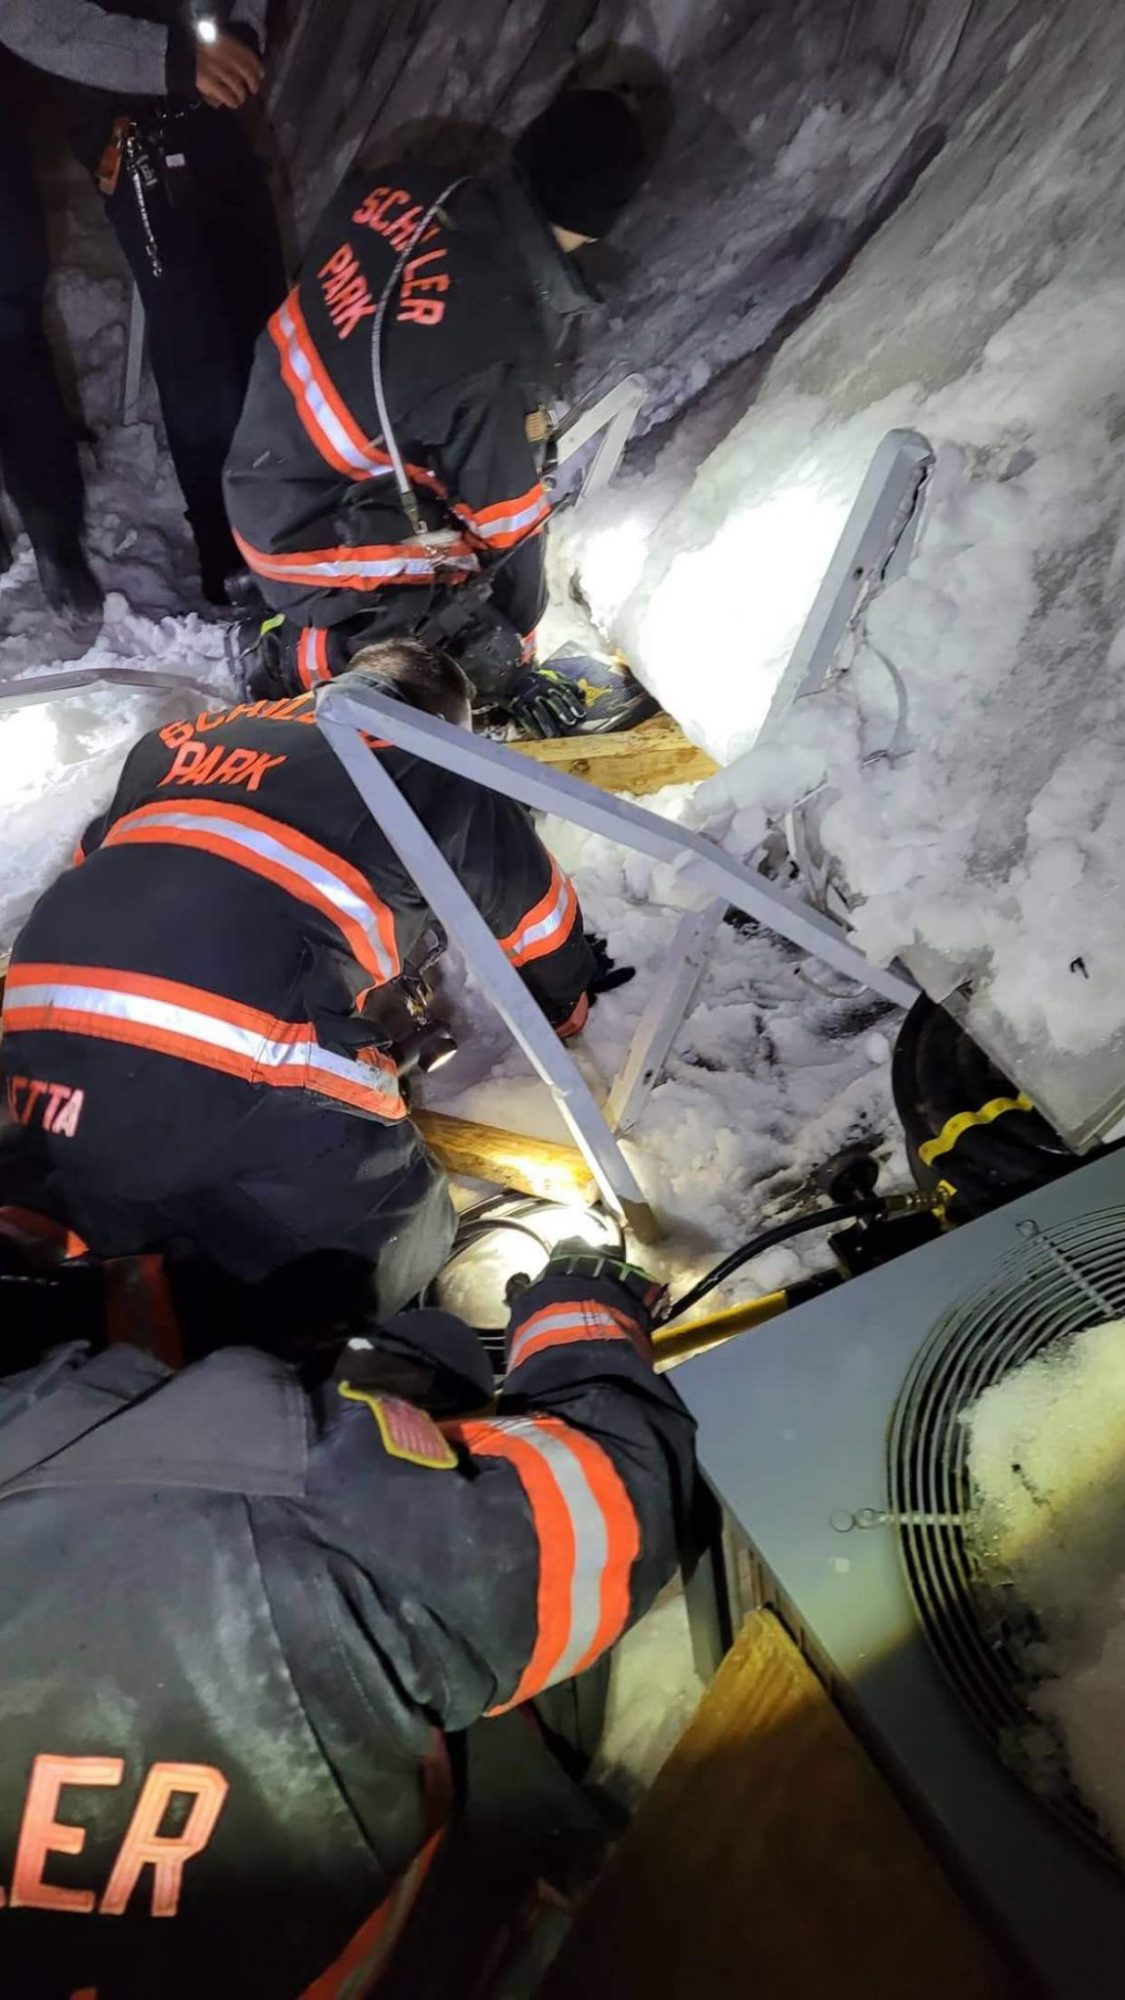 Woman Rescued After Spending 10 Hours Trapped Beneath Snowy Awning in Freezing Backyard